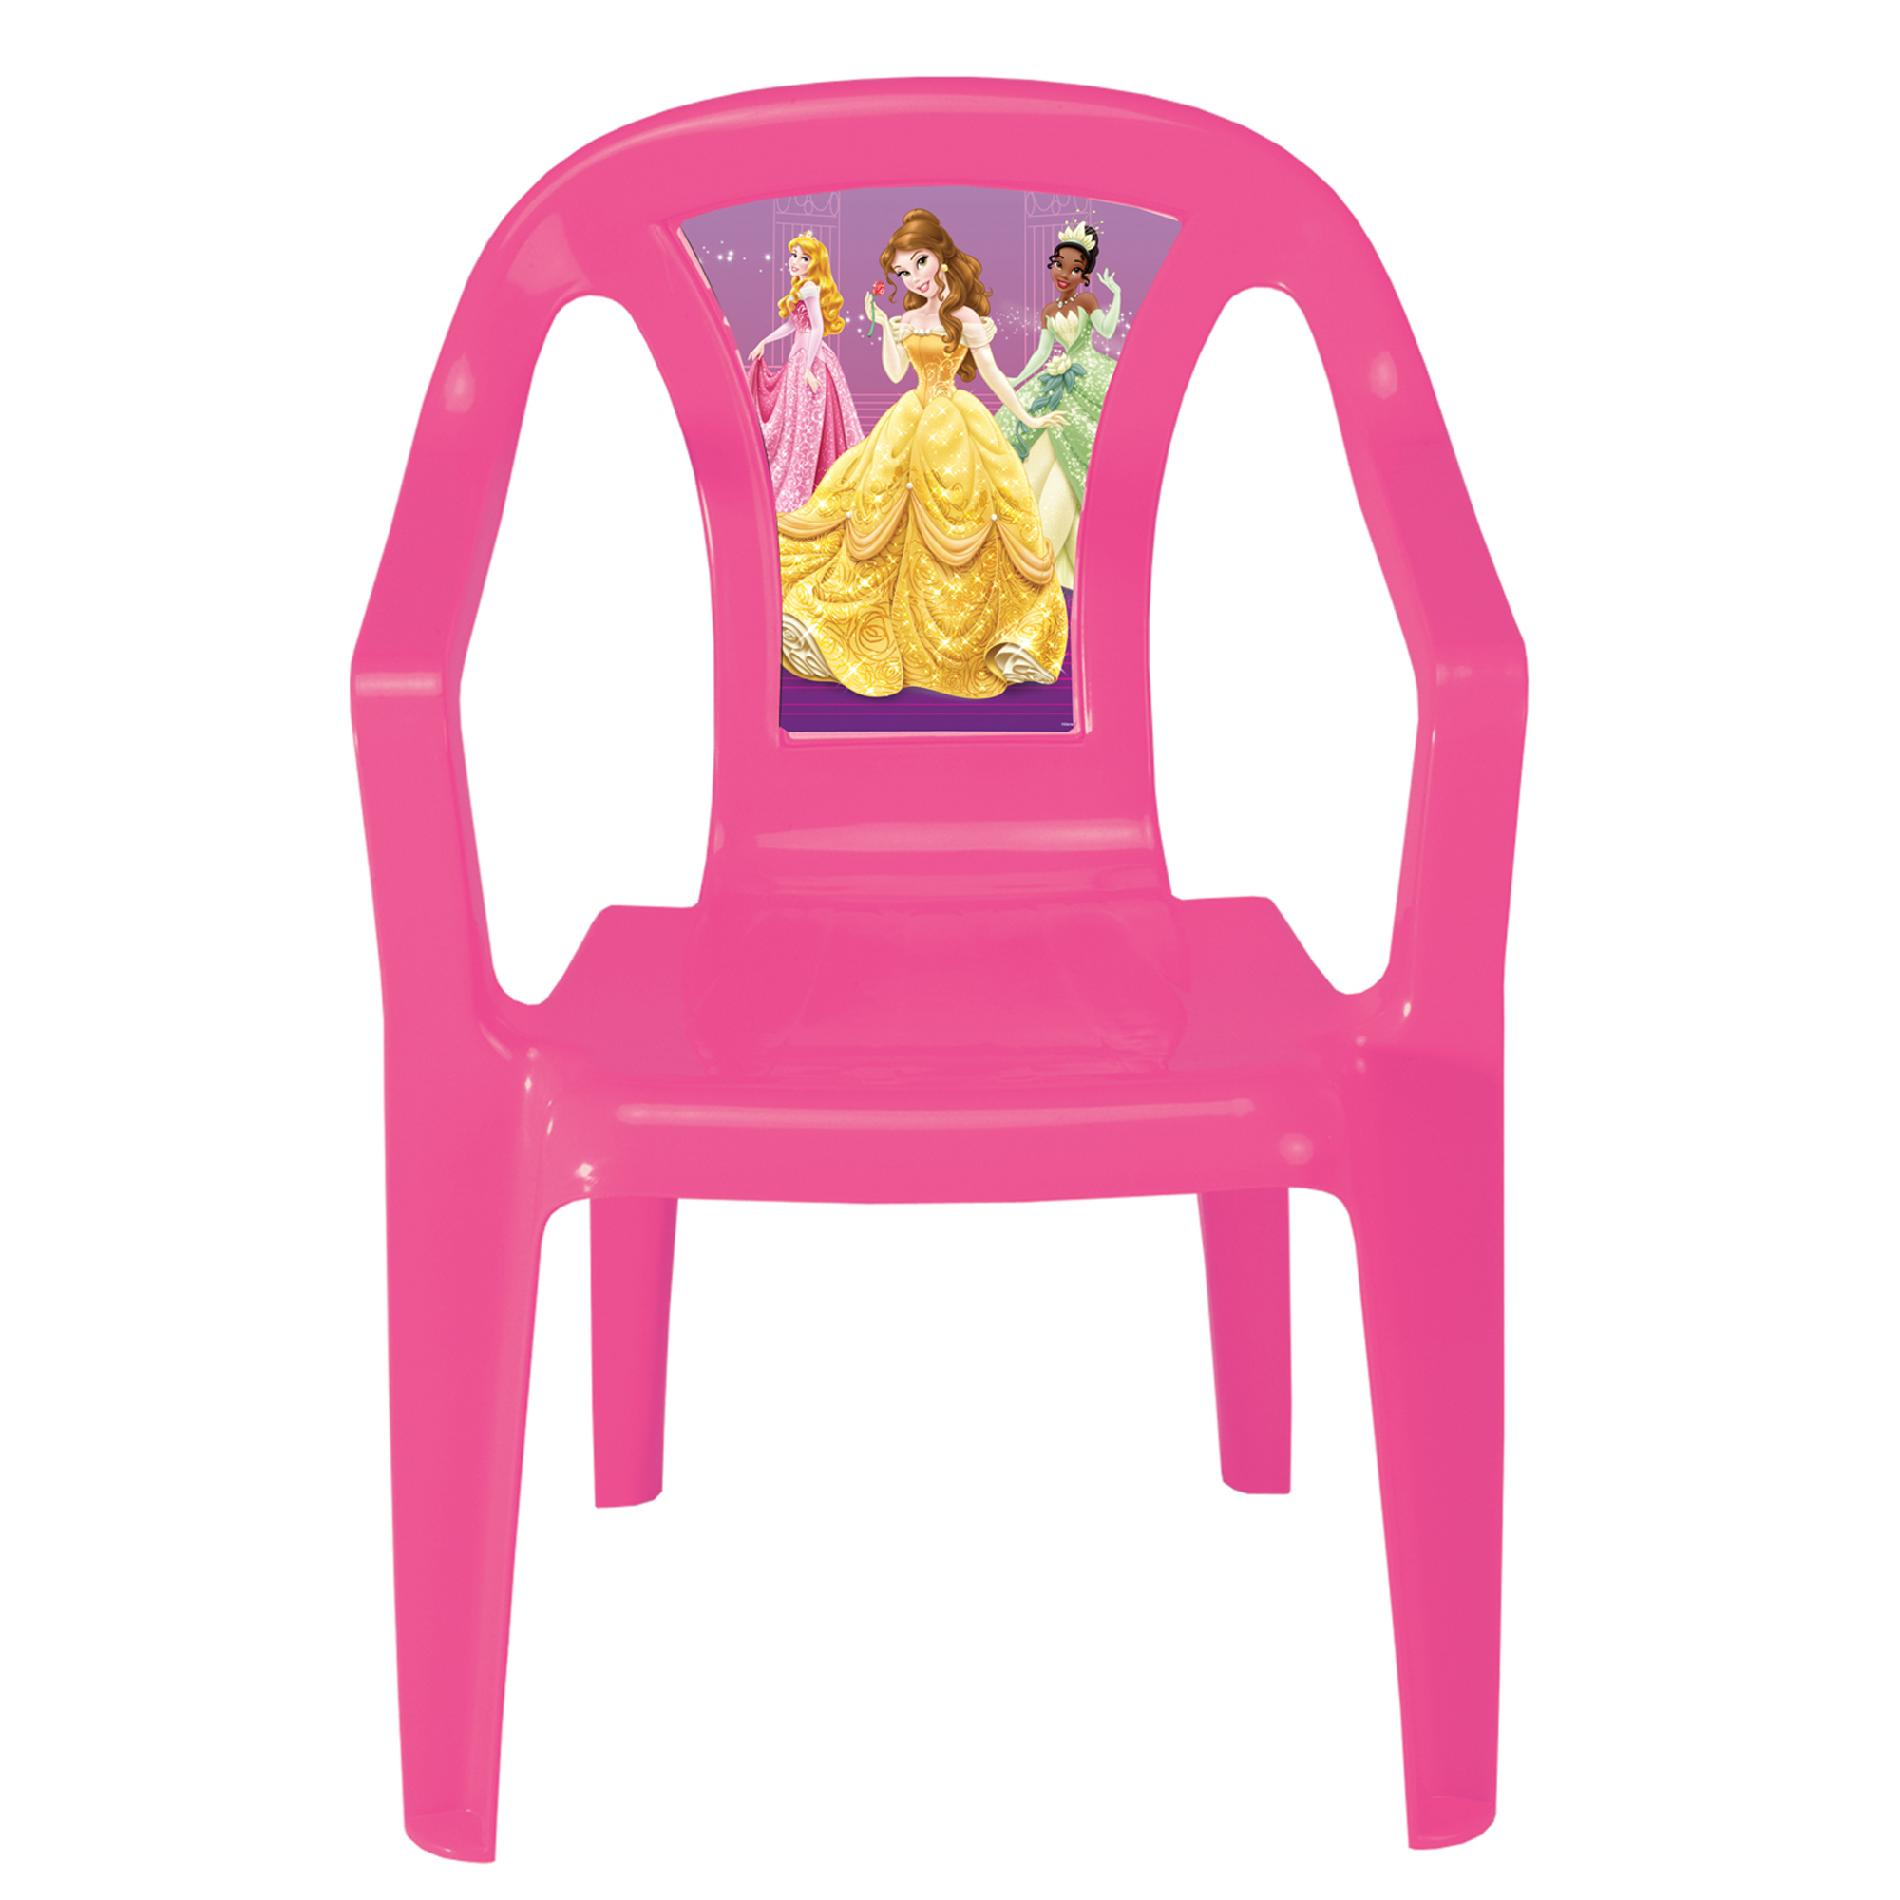 Merveilleux Disney Classic Resin Chair By Kids Only!   Disney Princess Royal Debut    Toys U0026 Games   Outdoor Toys   Outdoor Furniture U0026 Playhouses